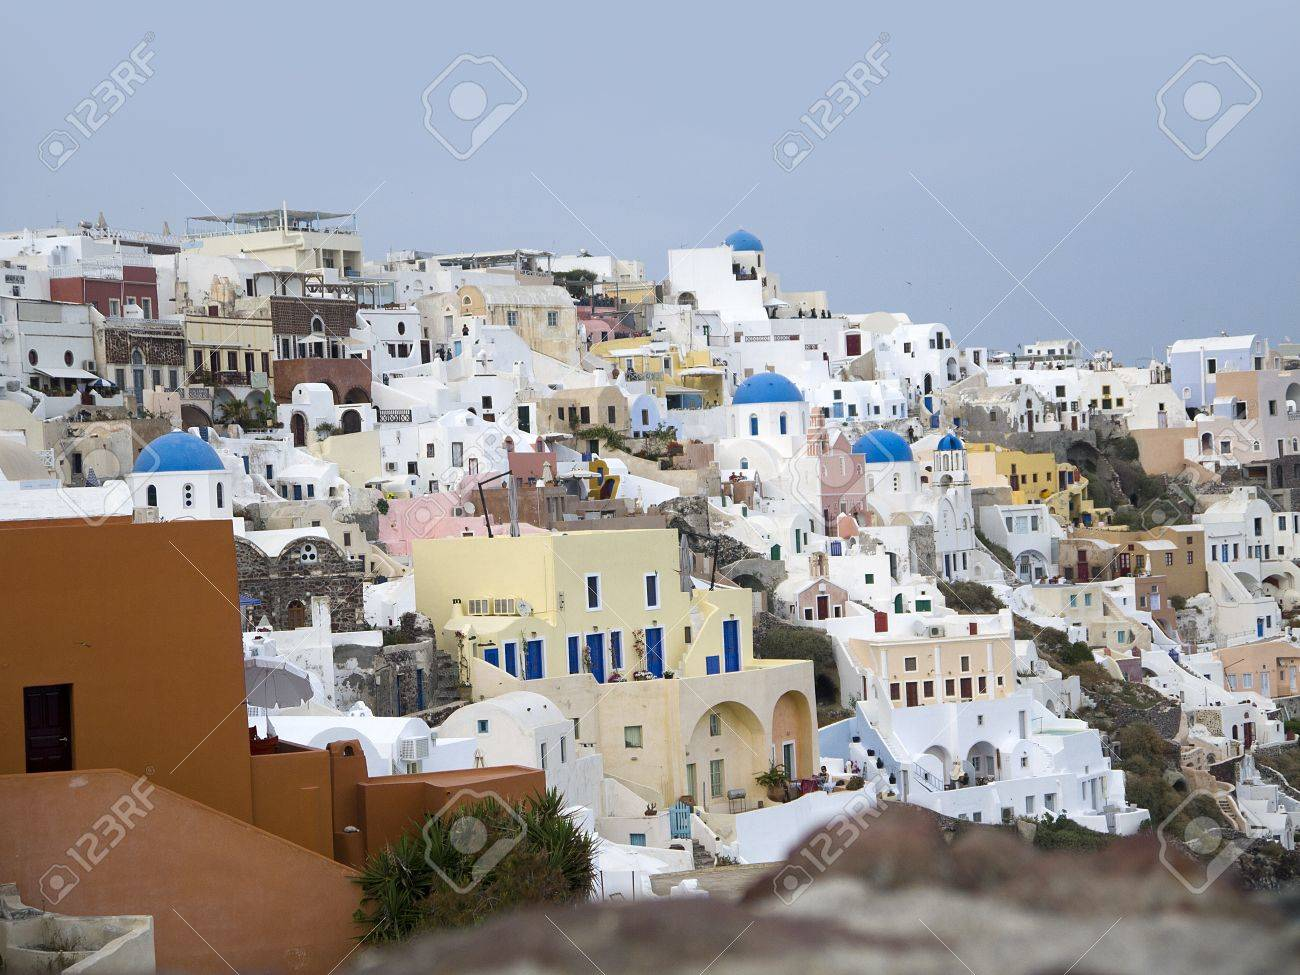 The Town of Oia on the Island of Santorini Greece Stock Photo - 13945400